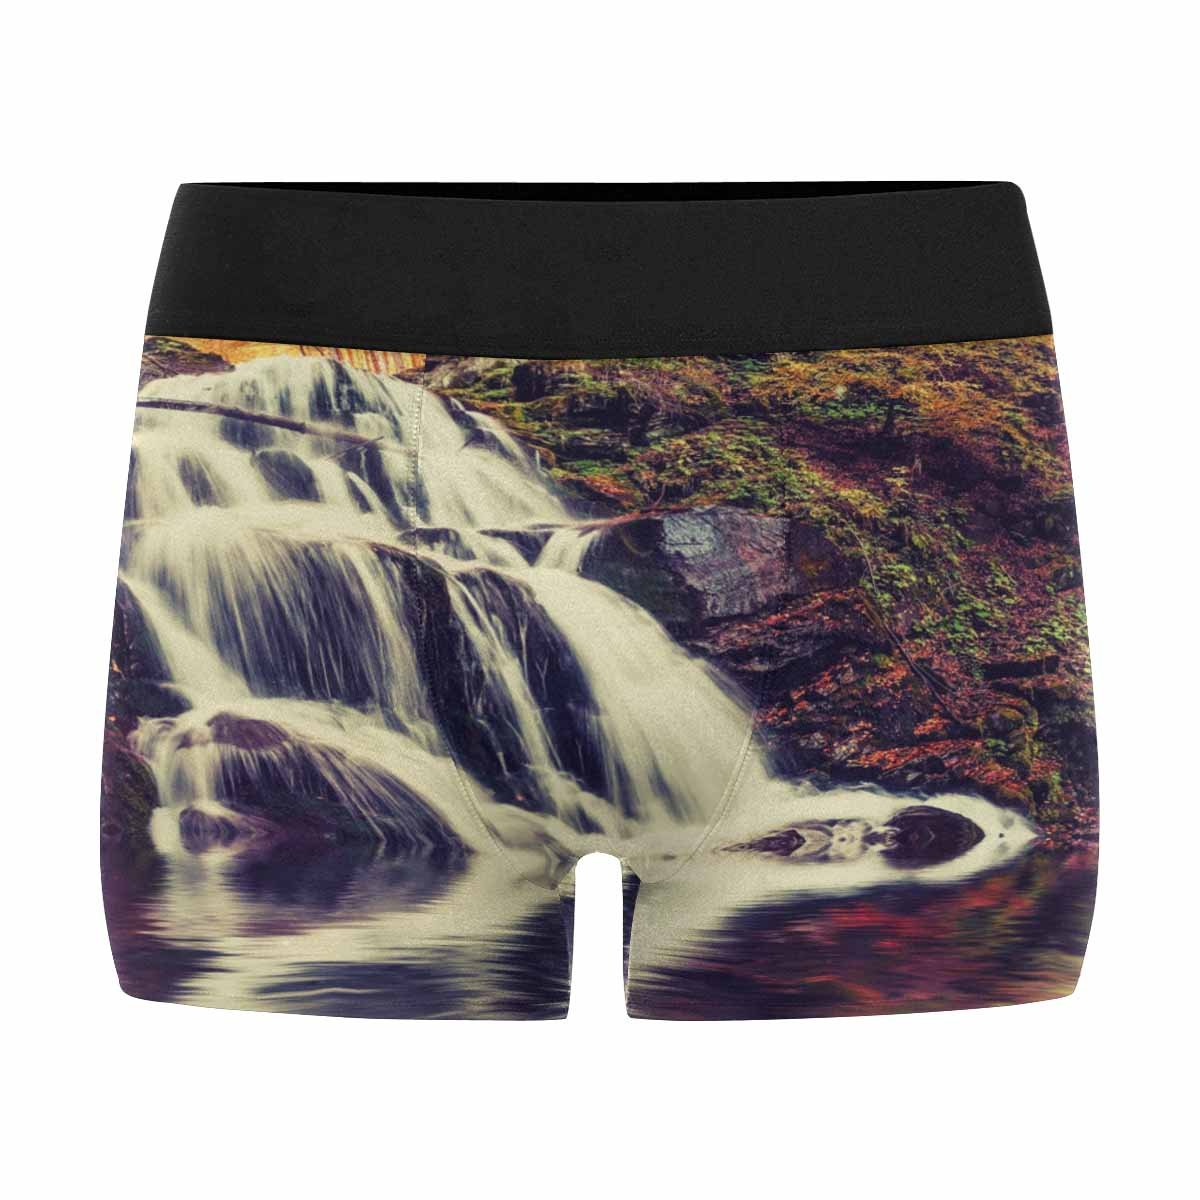 XS-3XL INTERESTPRINT Custom Mens All-Over Print Boxer Briefs Vintage Autumn Landscape Scene Decor with Waterfall and Lake